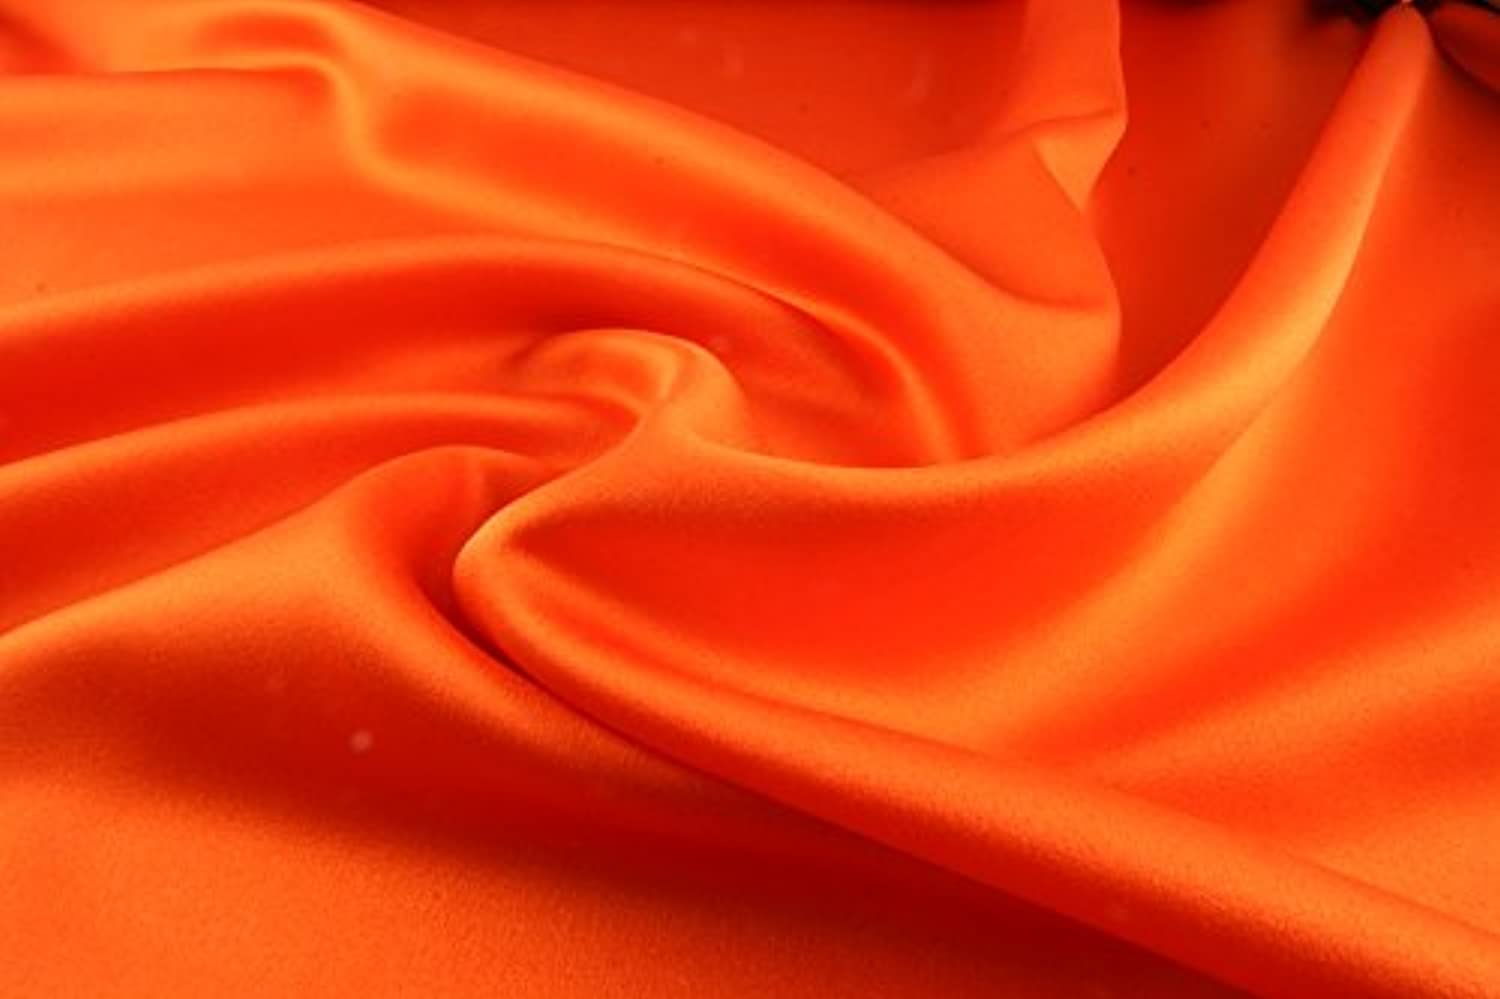 Satin Sheets Set   Satin Sheets Set Full XL   Full XL Sheets Set orange   Hotel Quality Silky Soft Luxurious   Sheet Set with Duvet Set   Durable Comfort Bedding Set